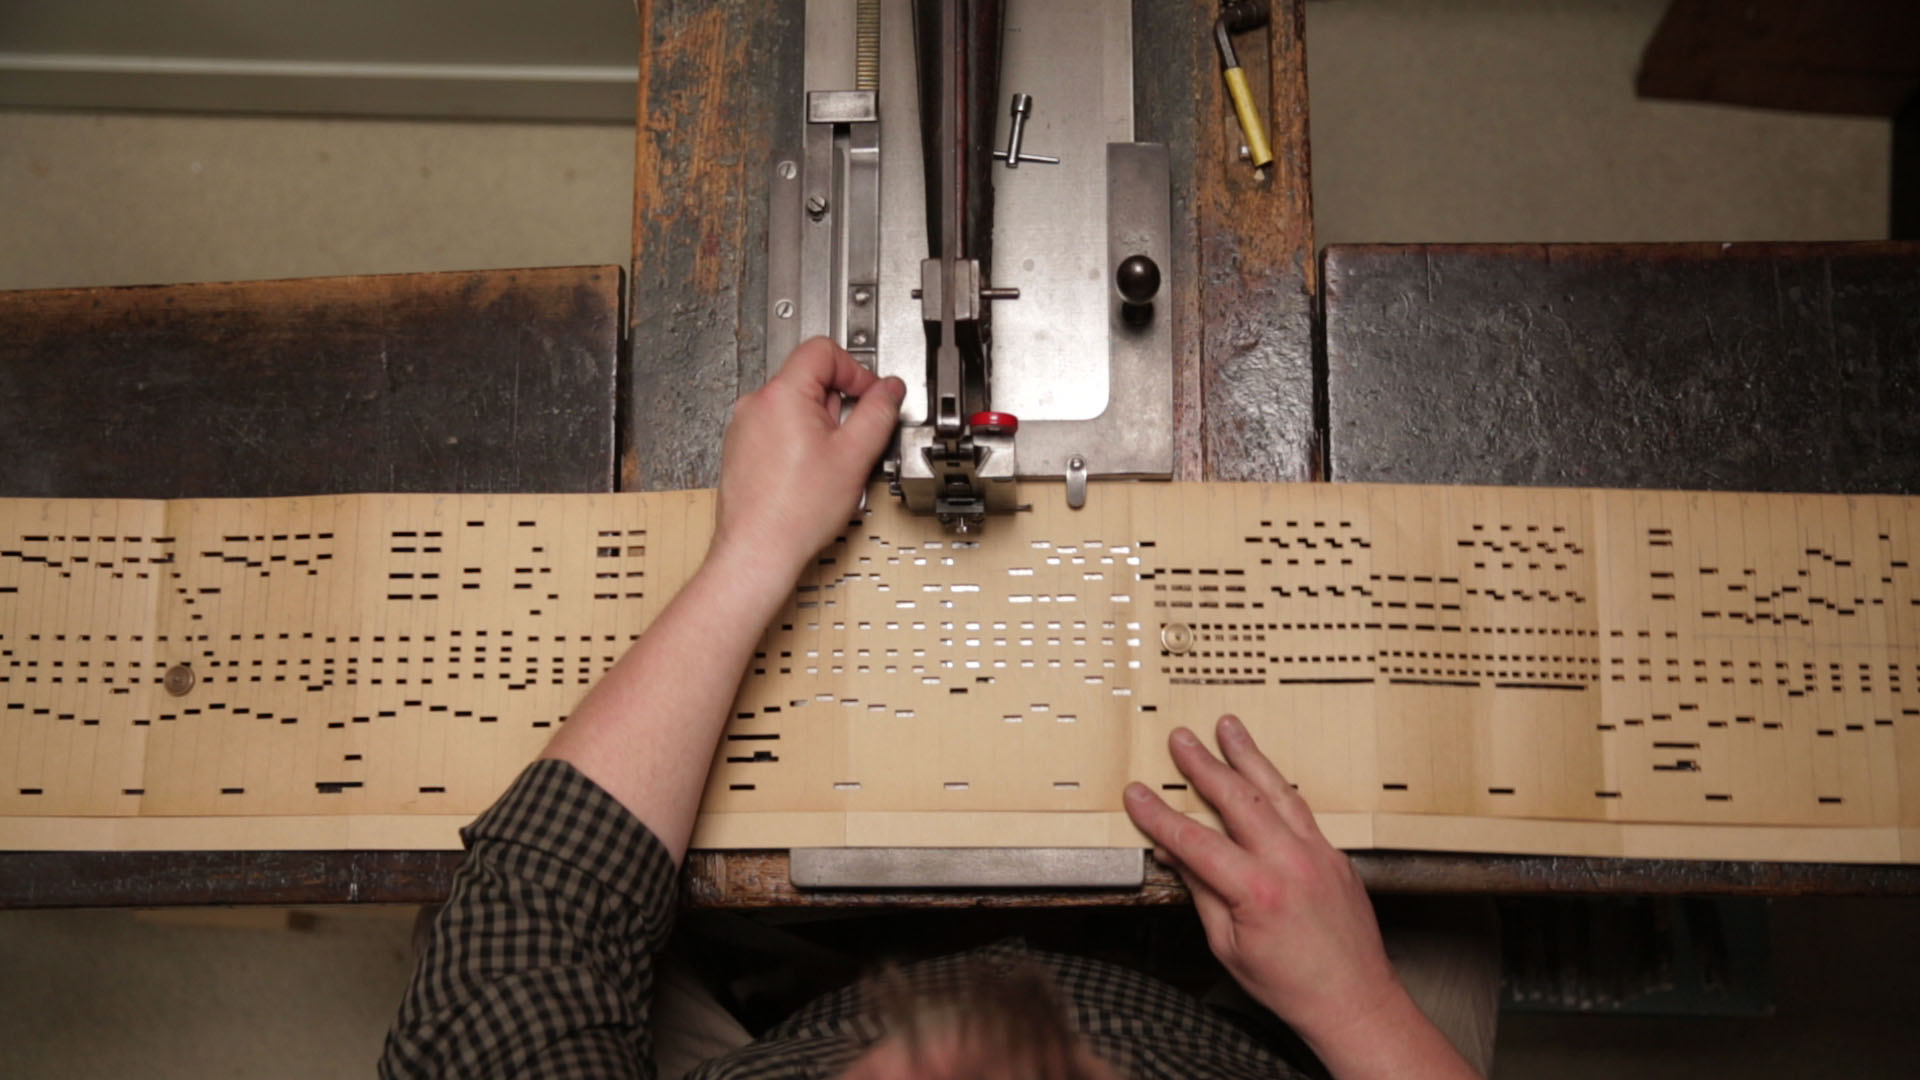 A top view of the making of an organ book using a punching machine